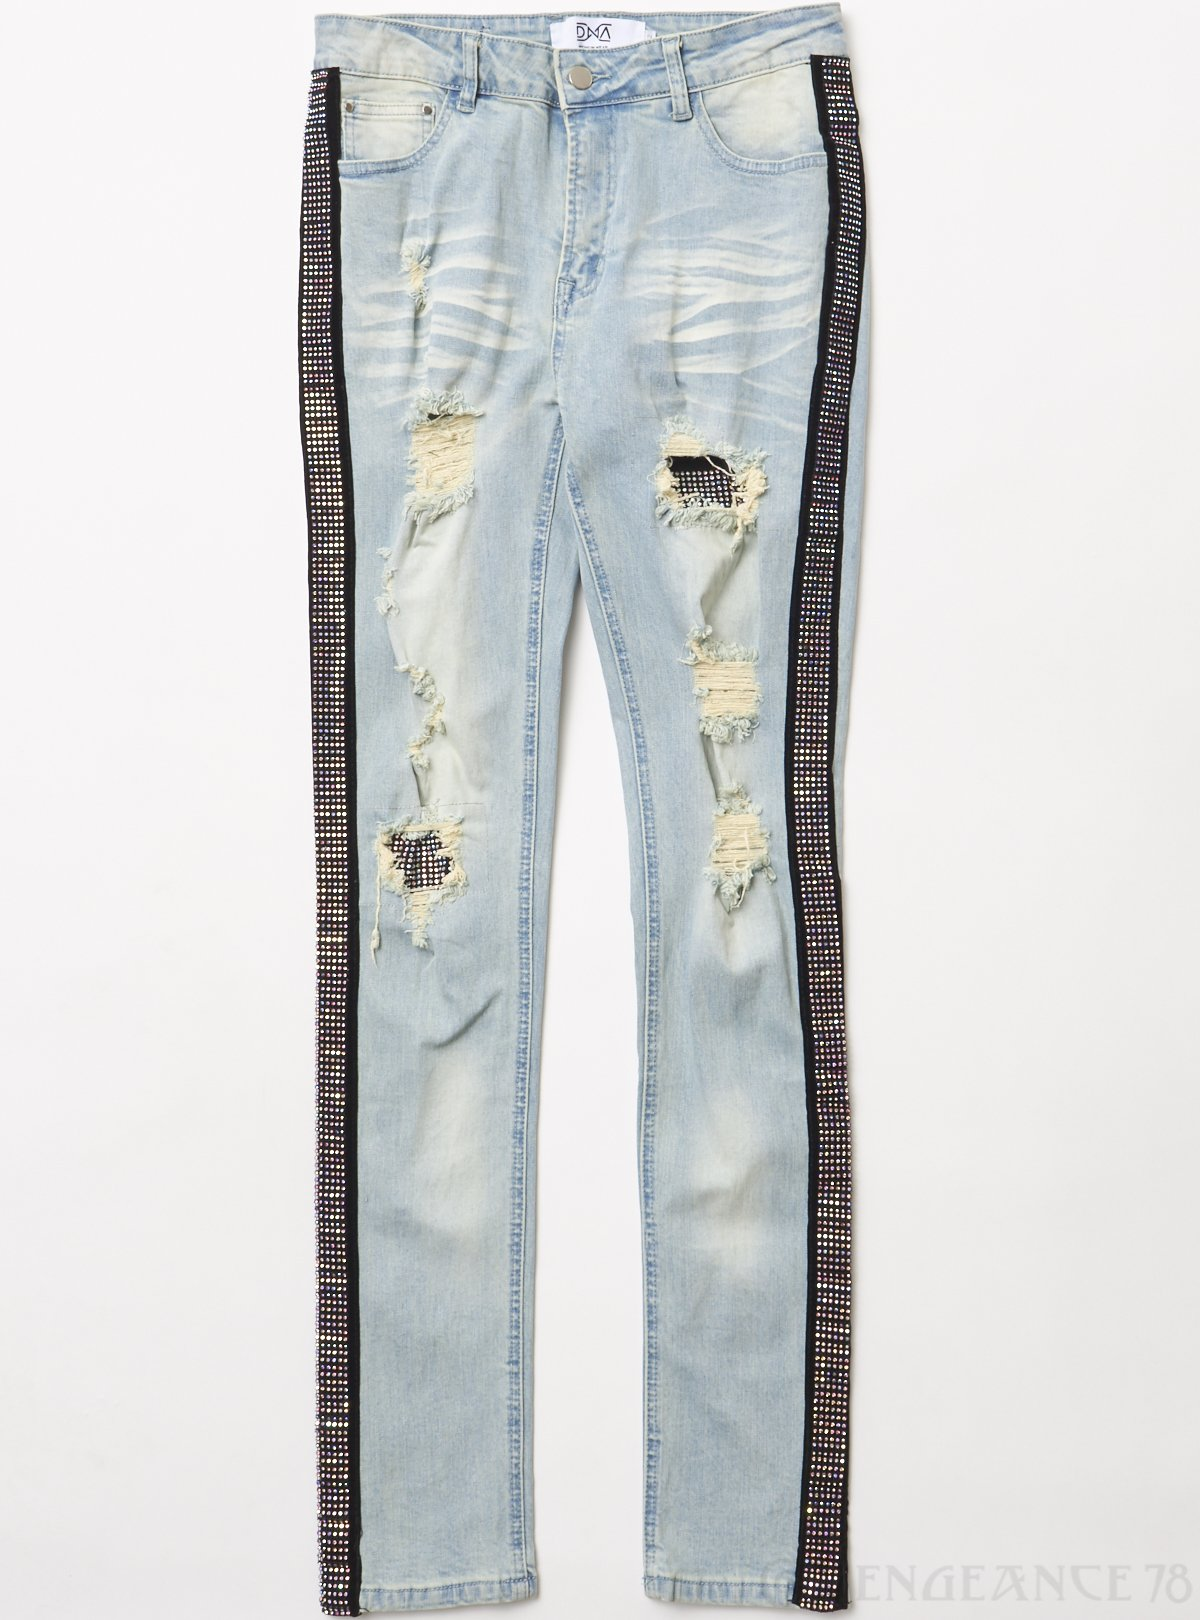 DNA Jeans - Side Stones - Light Blue And Multi